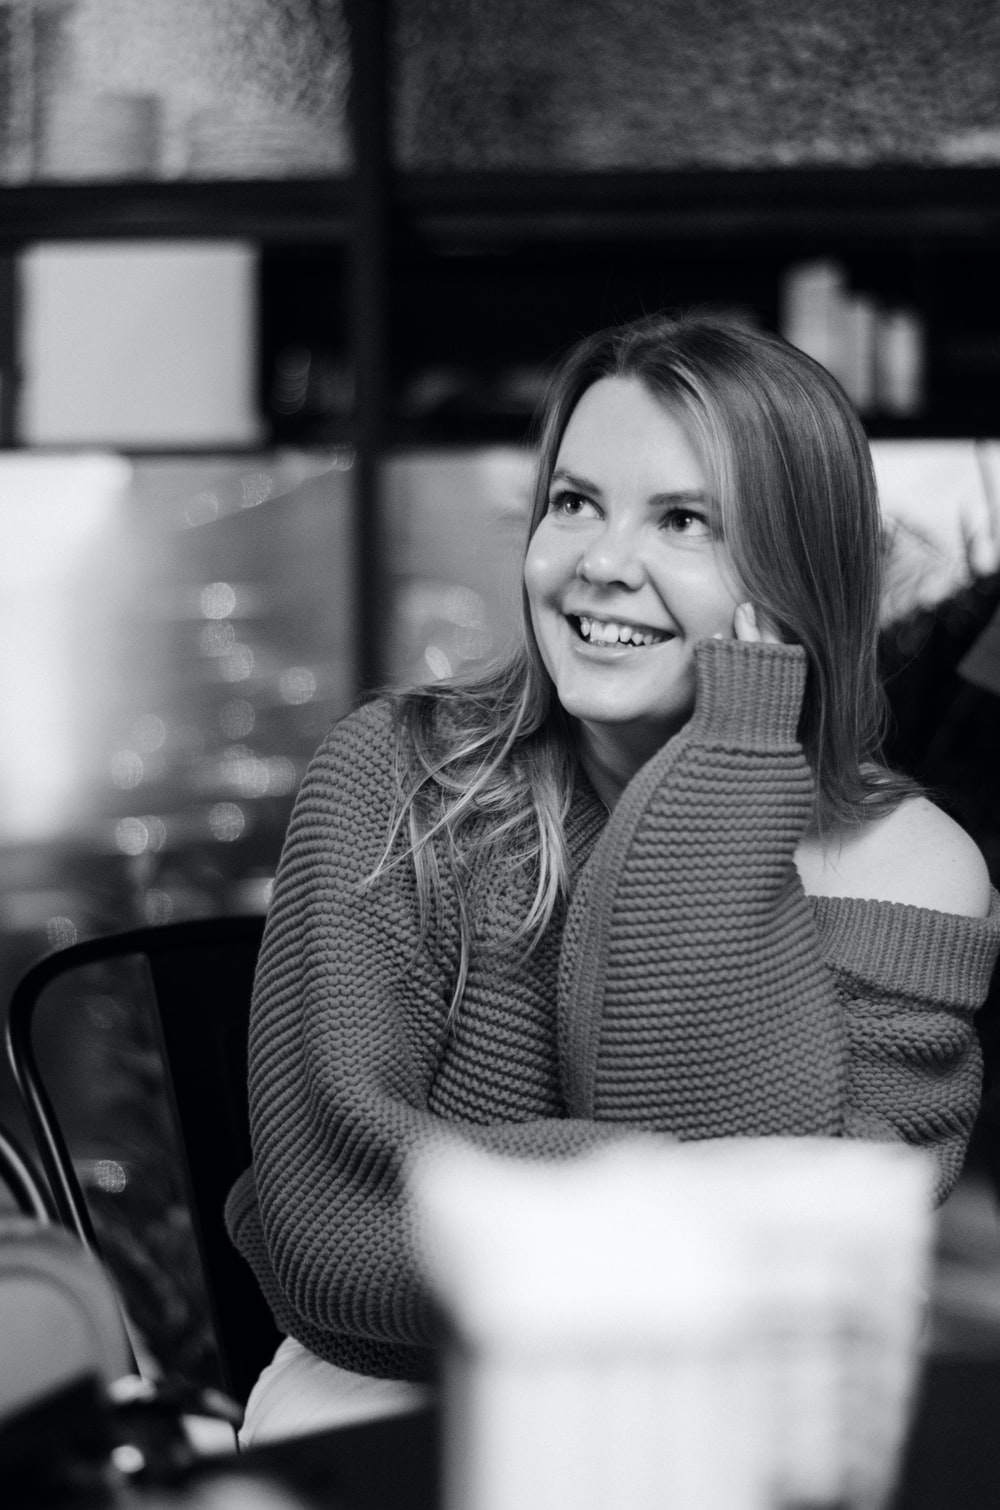 grayscale photo of woman in sweater smiling